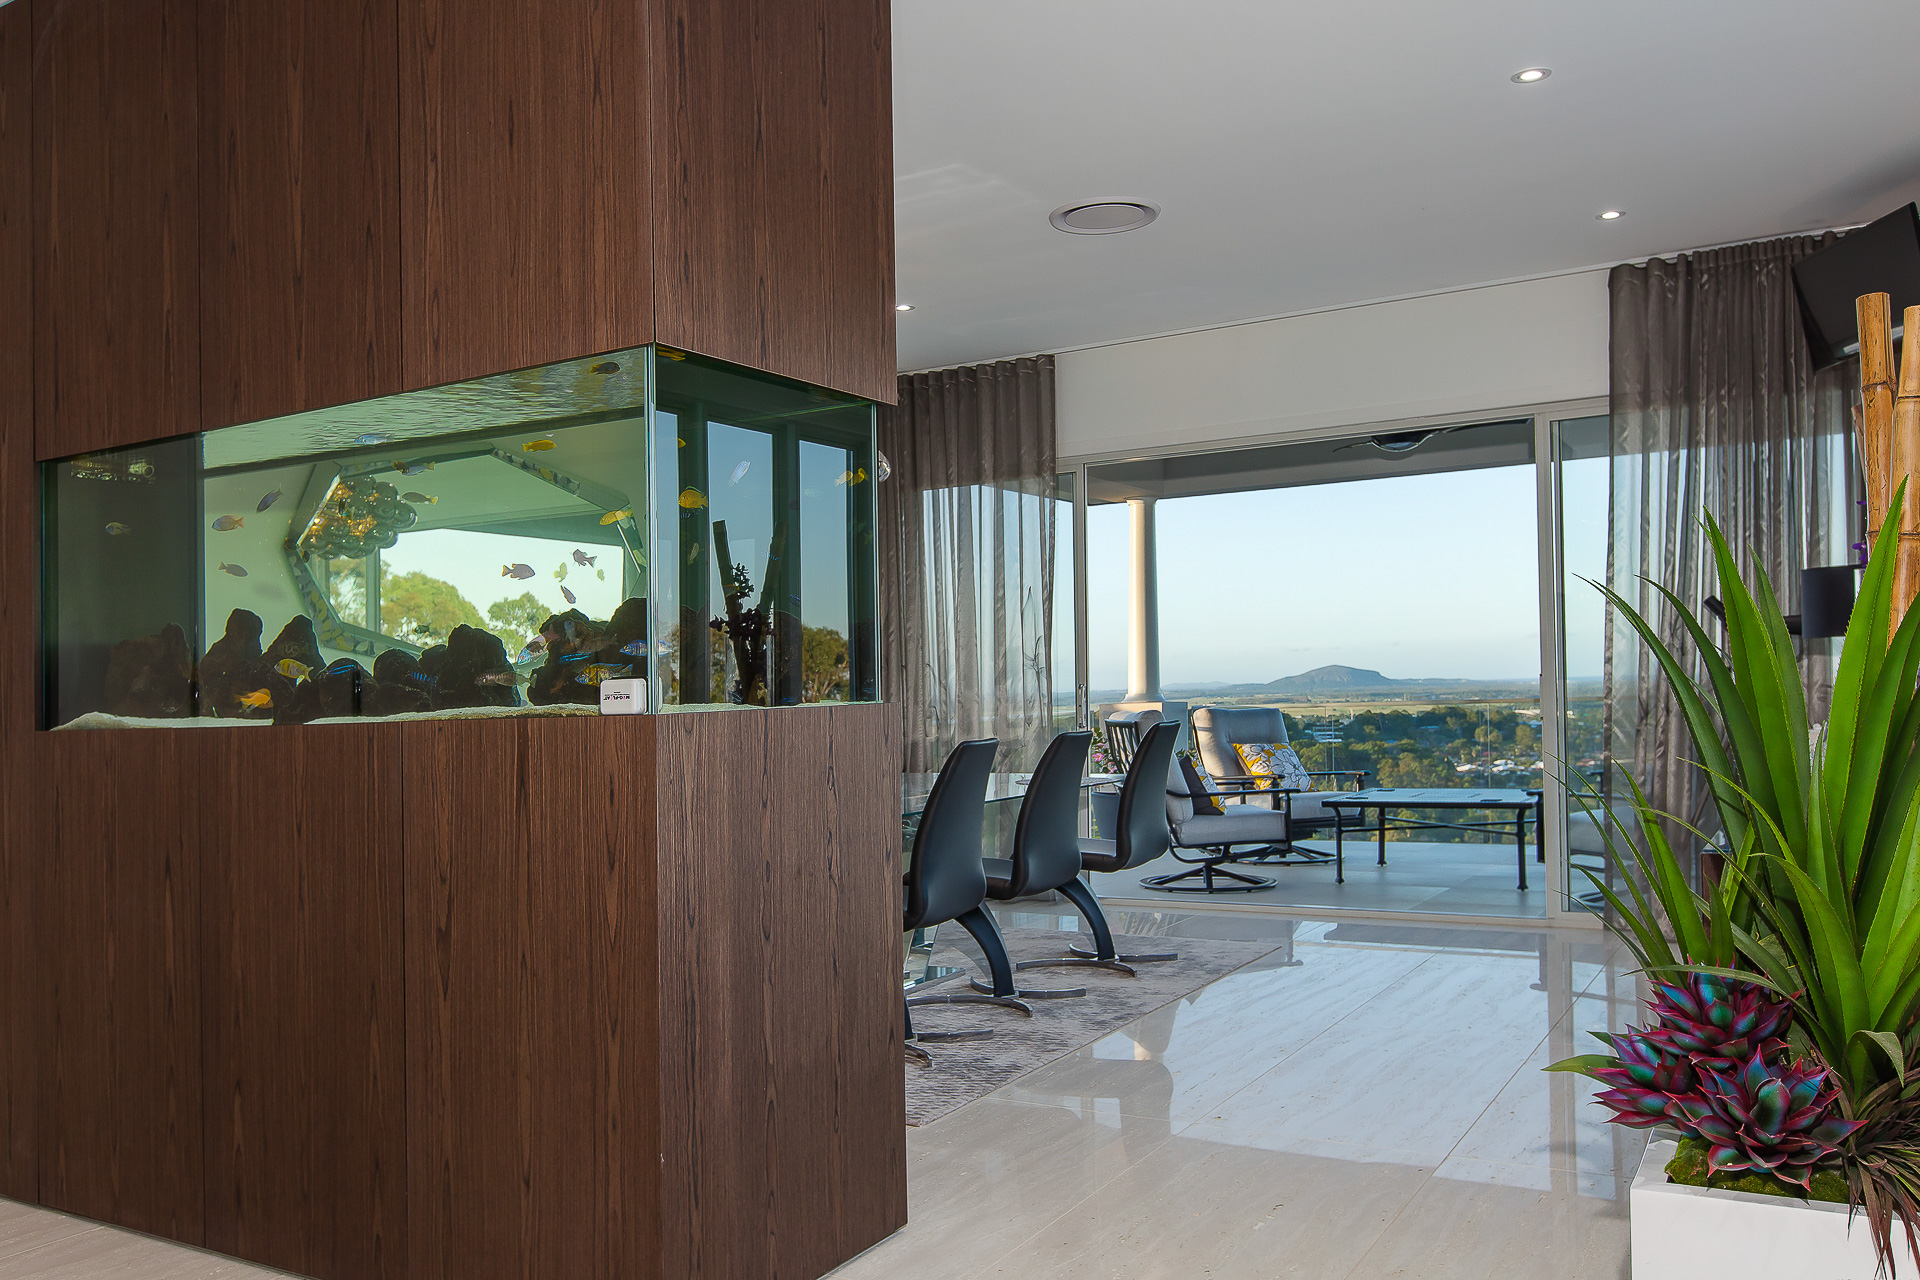 custom fish tank, built in, luxury cabinets, luxury home Brisbane, room divider, minka joinery